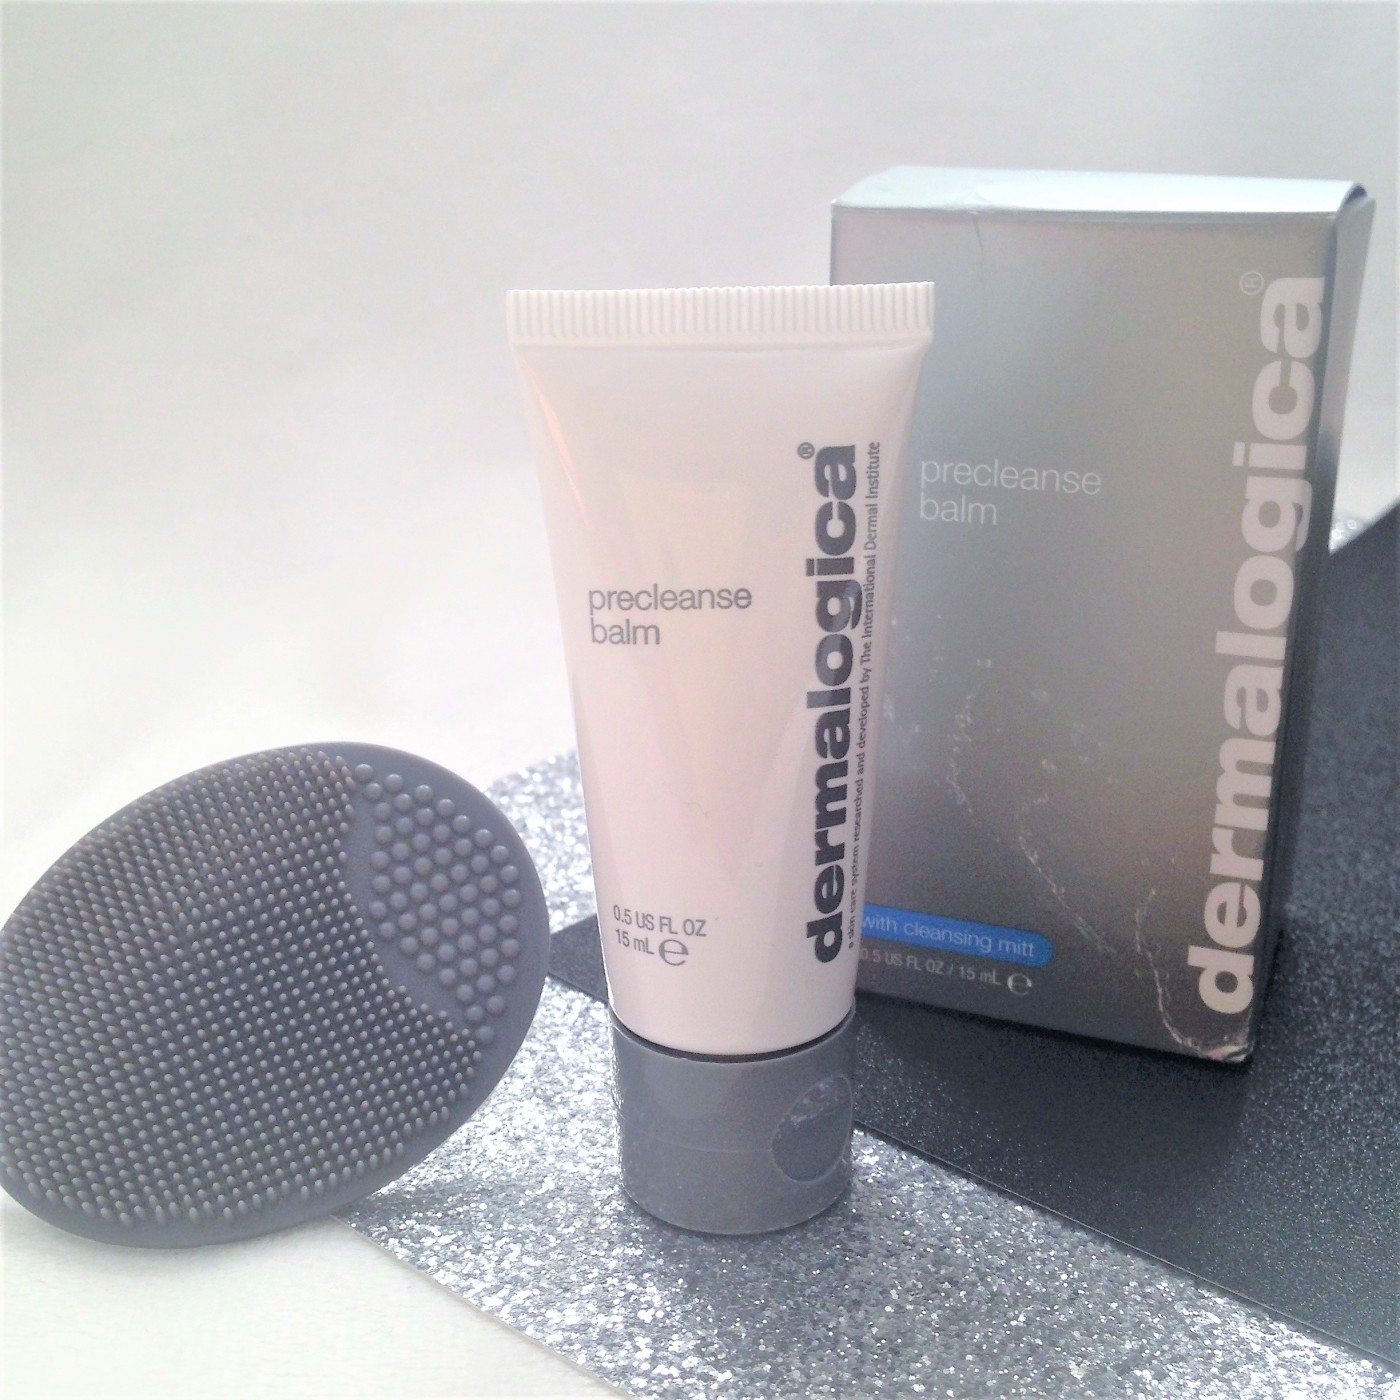 Precleanse Cleansing Oil by Dermalogica #15